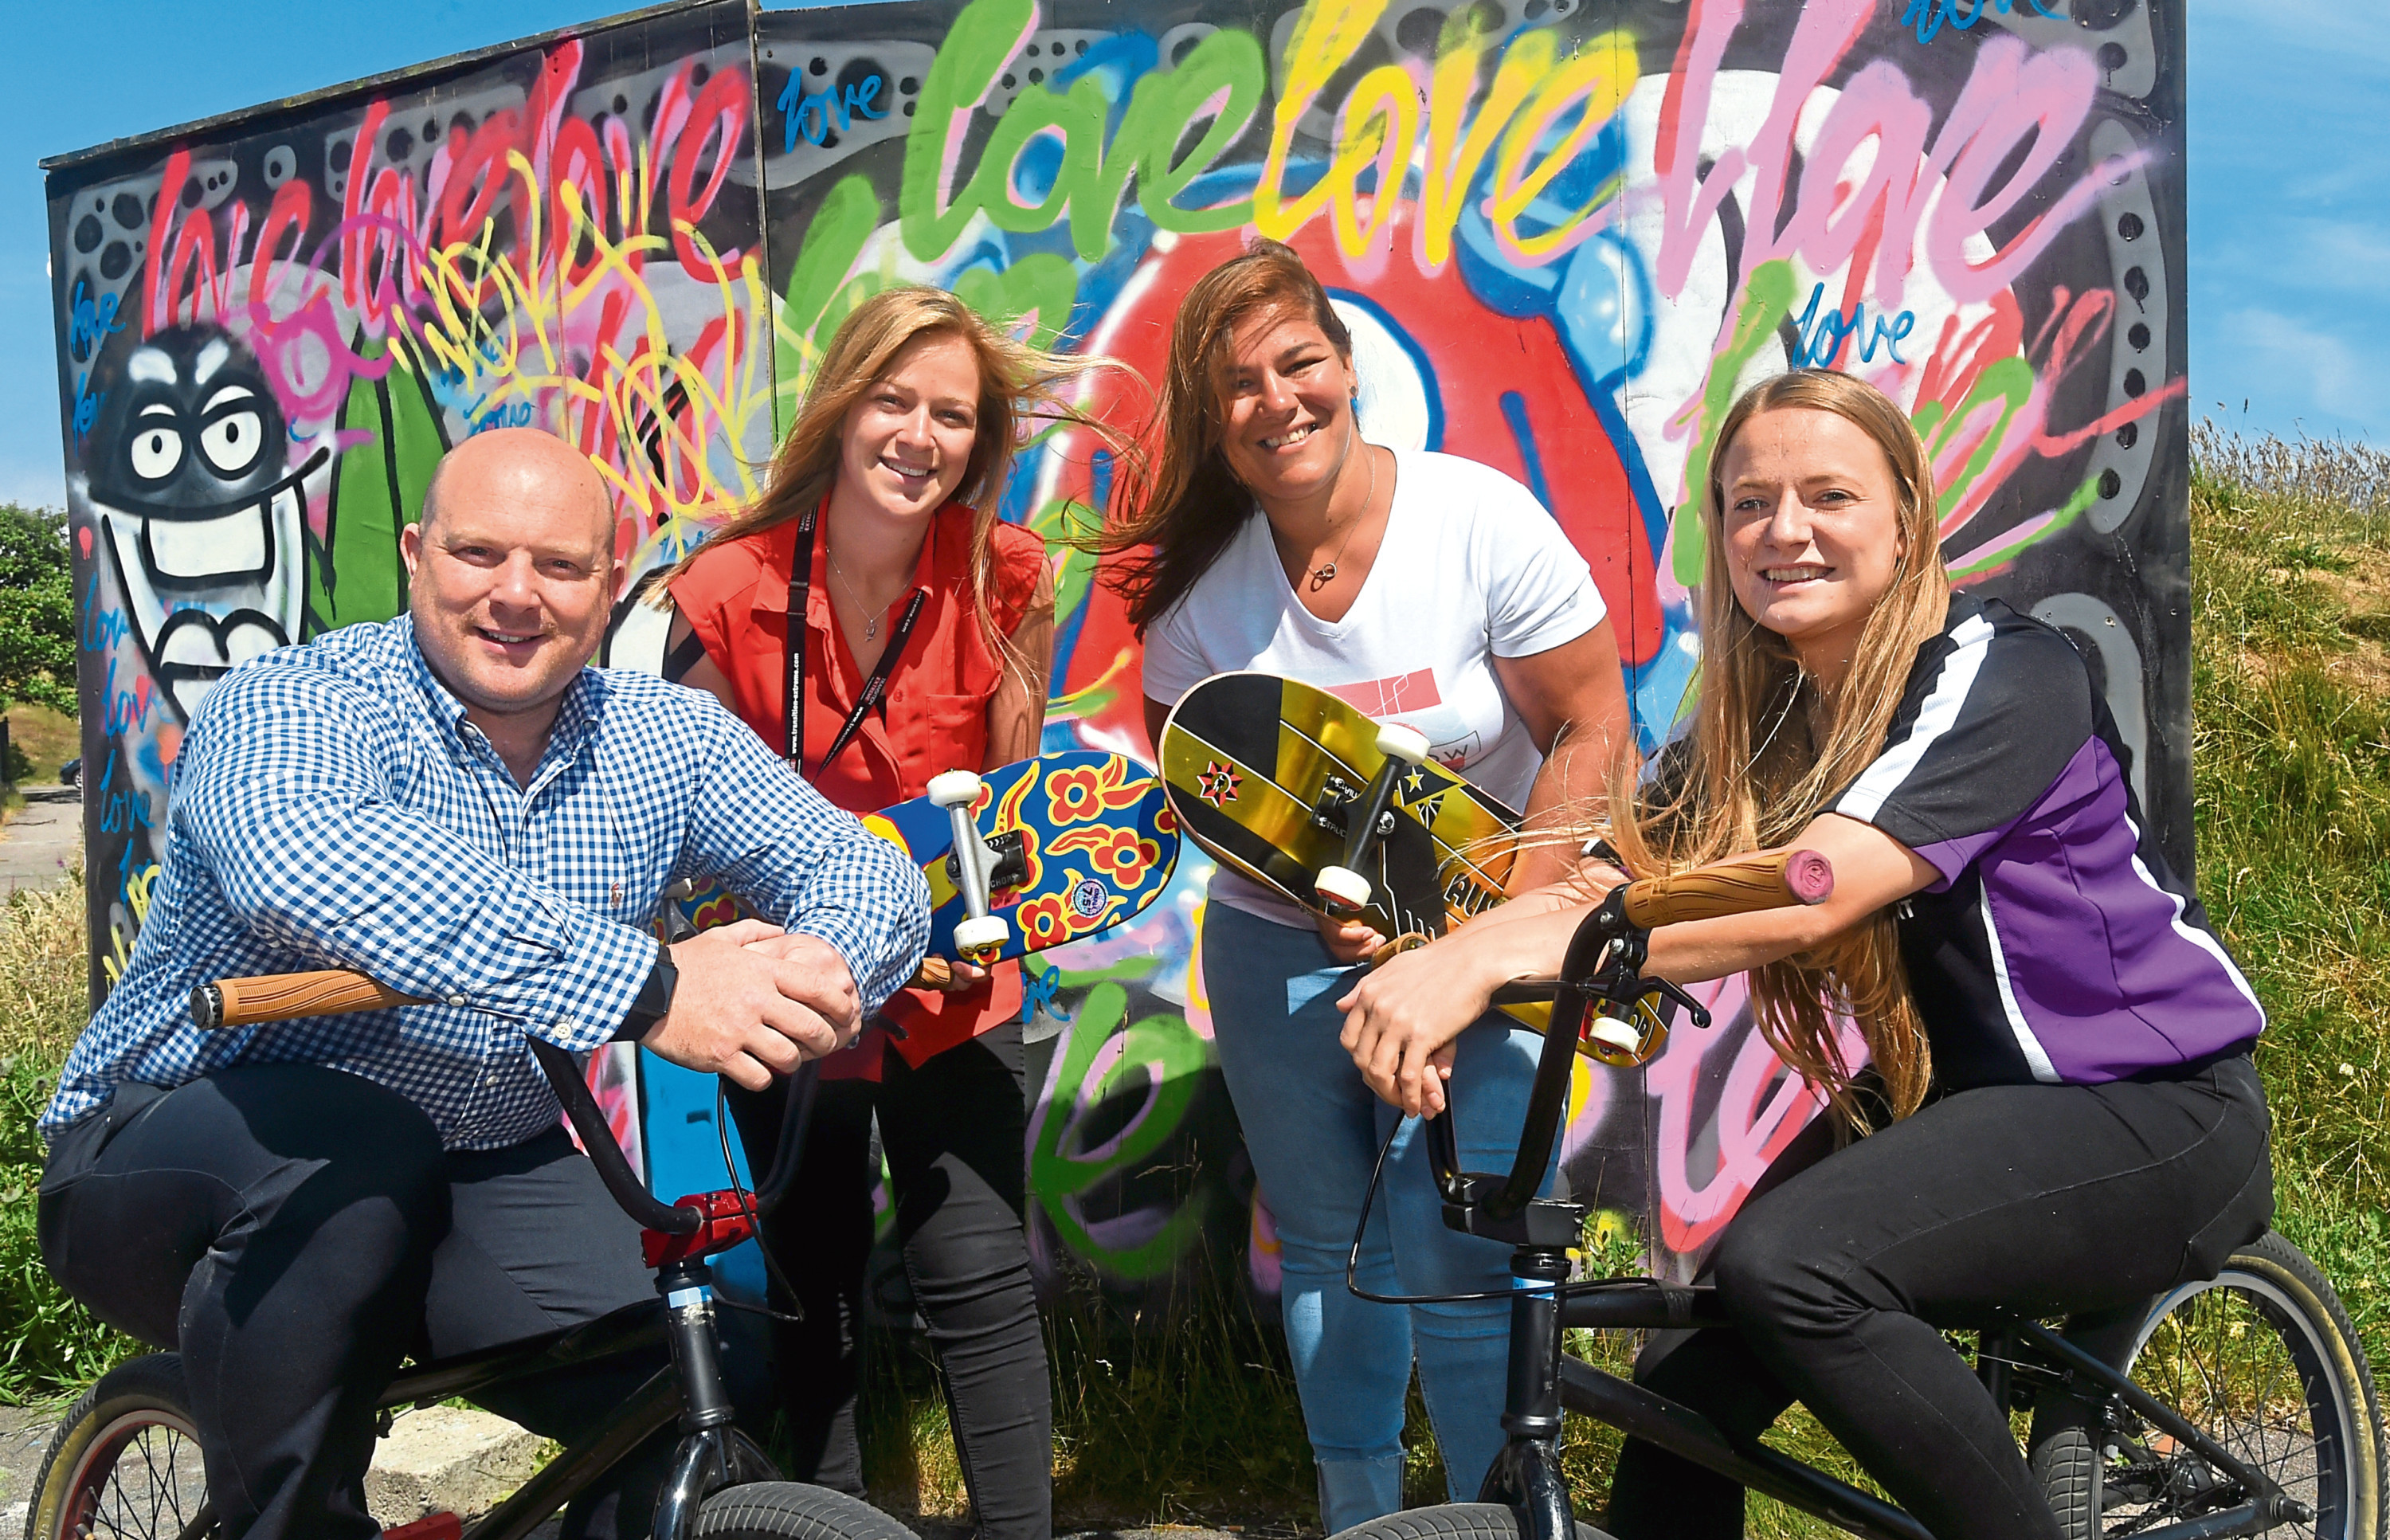 Police are launching a summer activities programme for children aimed at keeping them out of trouble in the school holidays. Pictures at Transition Extreme. Pictured from left, Mark Williams, Chief Operating Officer, Linzi Harrow, Project Coordinator for Transition Extreme and Amanda Montgomery, Early intervention Worker and Hannah Clews, Streetsport co-ordinator. 02/07/18 Picture by HEATHER FOWLIE